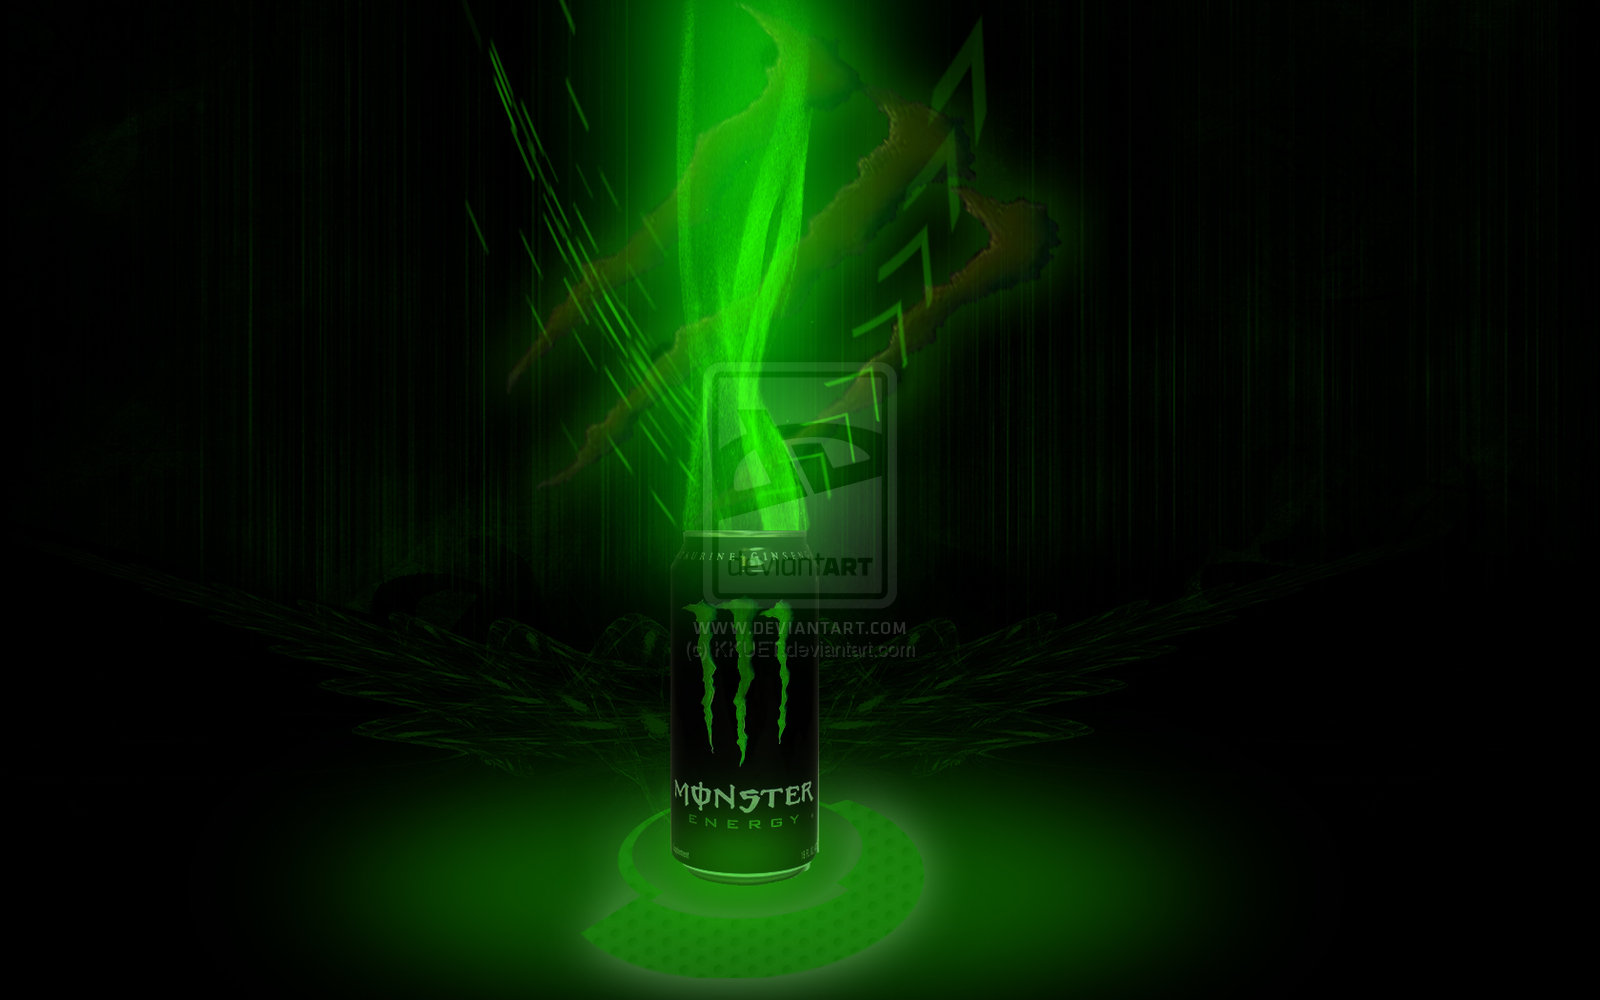 Green monster wallpaper sf wallpaper green monster backgrounds free download by jacklyn bough voltagebd Images